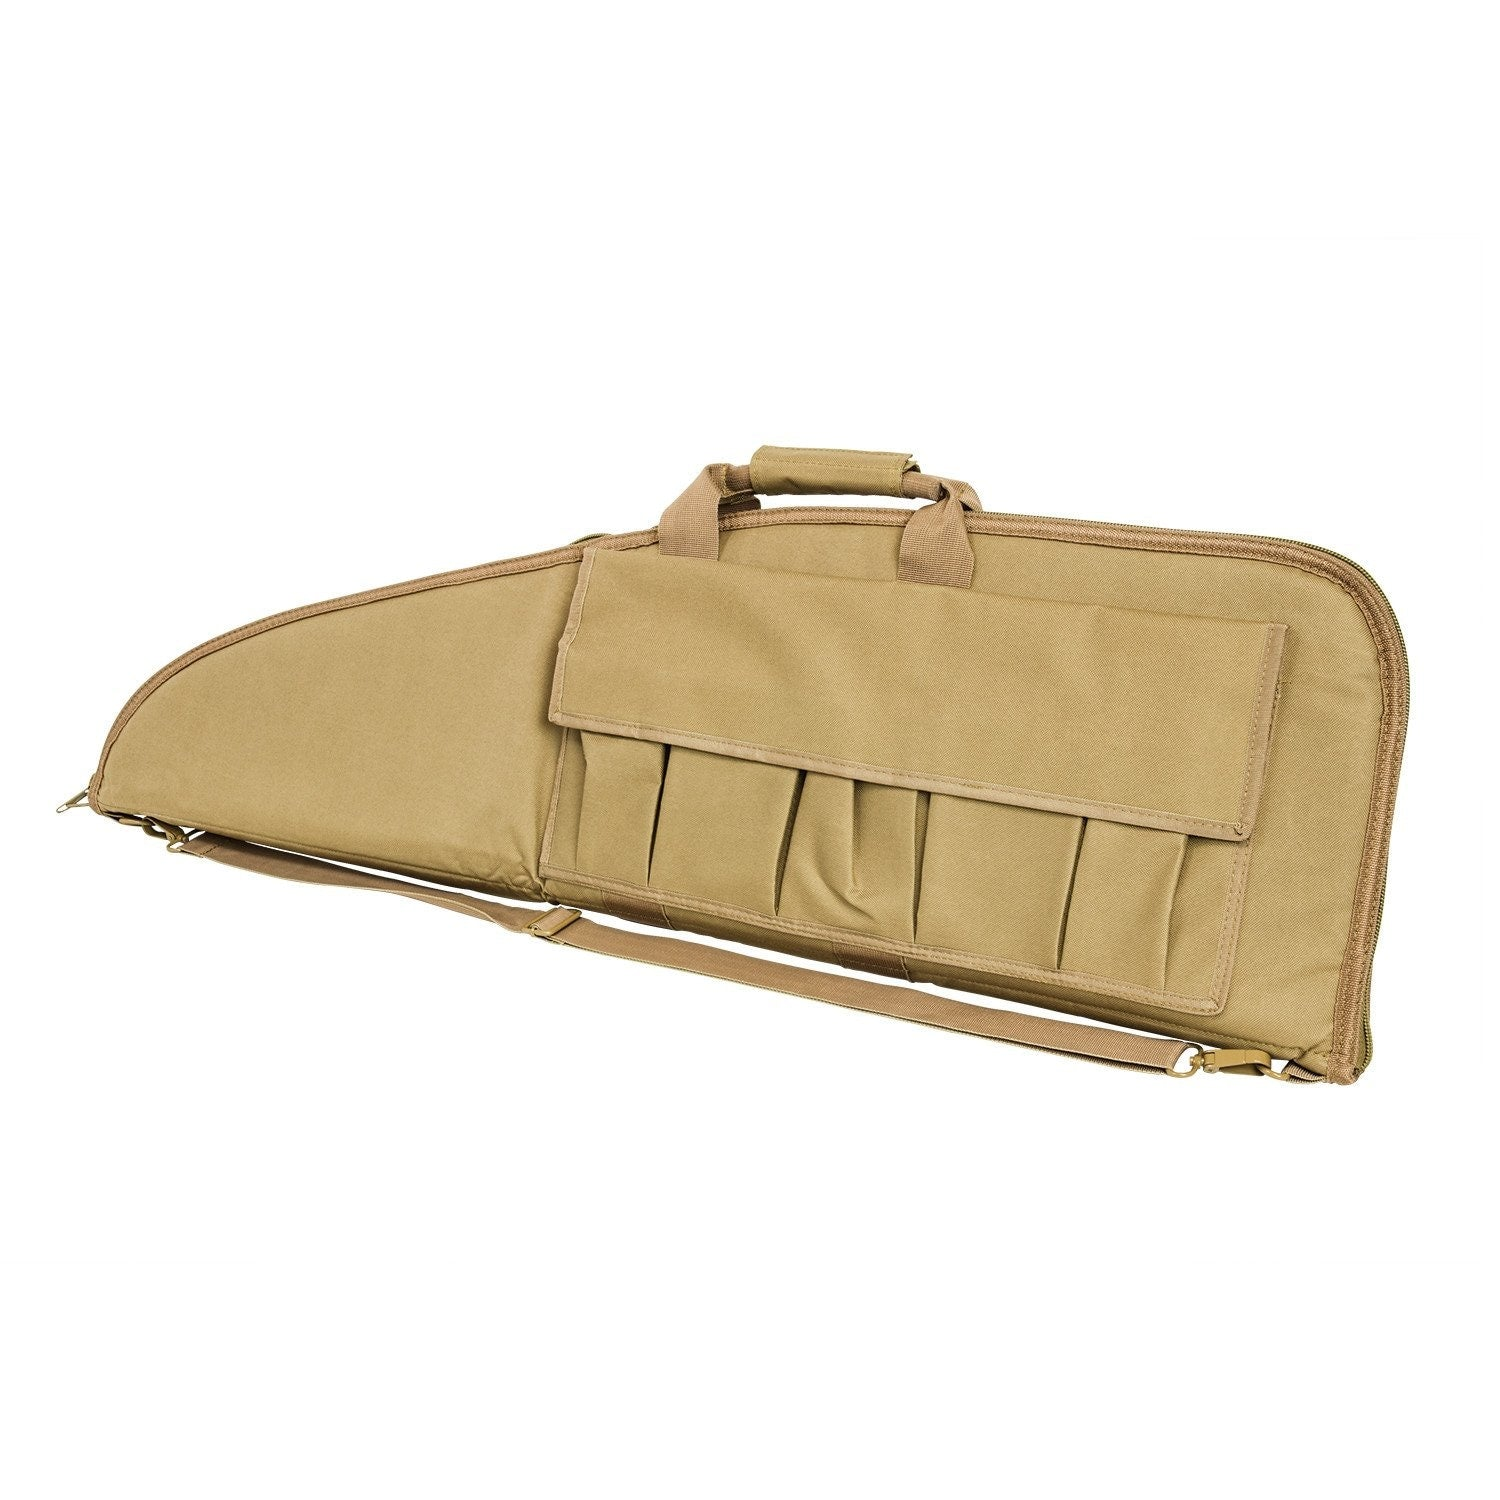 Rifle Case (46 X 13) - Tan - Rifle/carbine Cases - Vism - Colonel Mustard